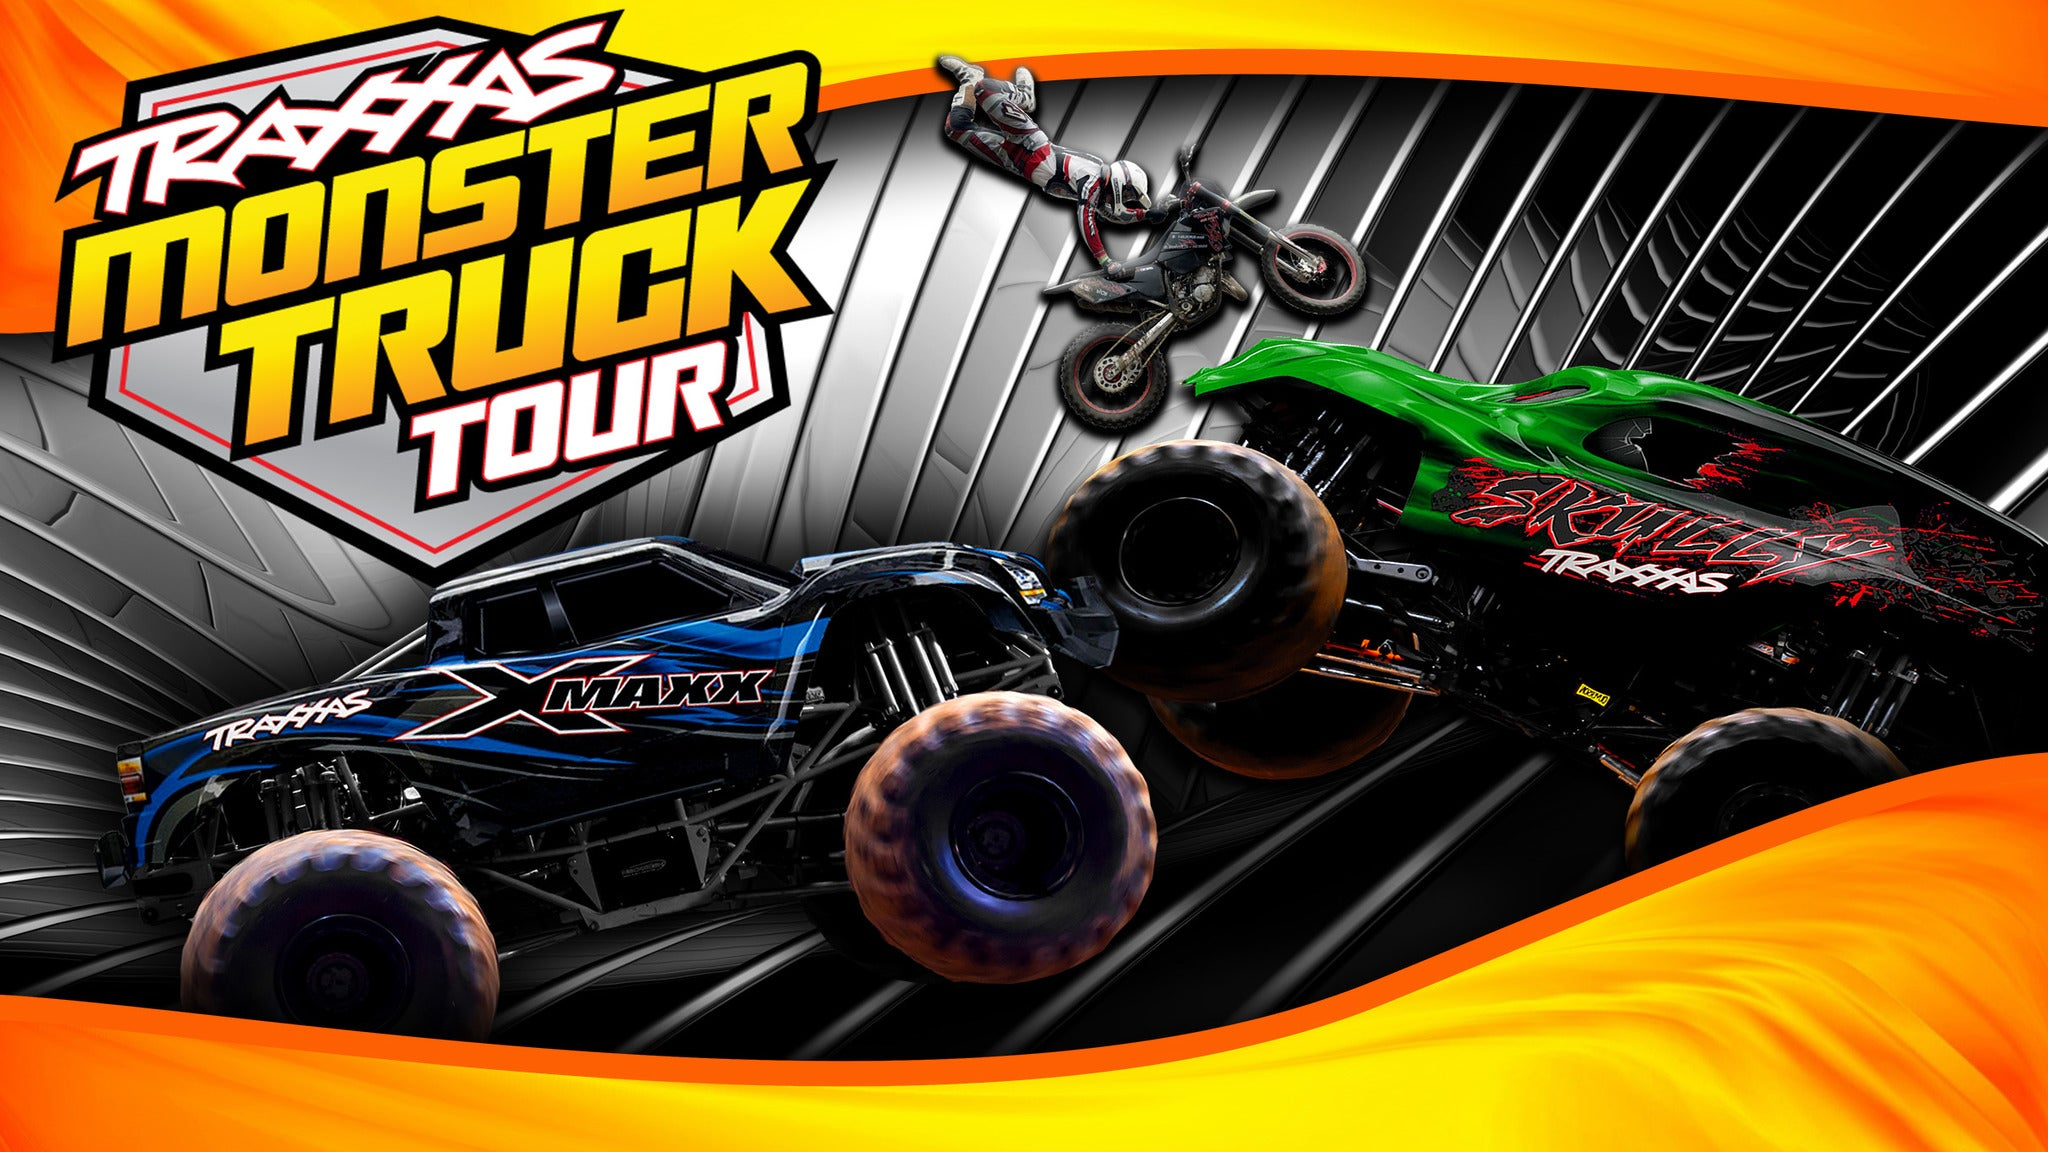 Traxxas Monster Truck Tour